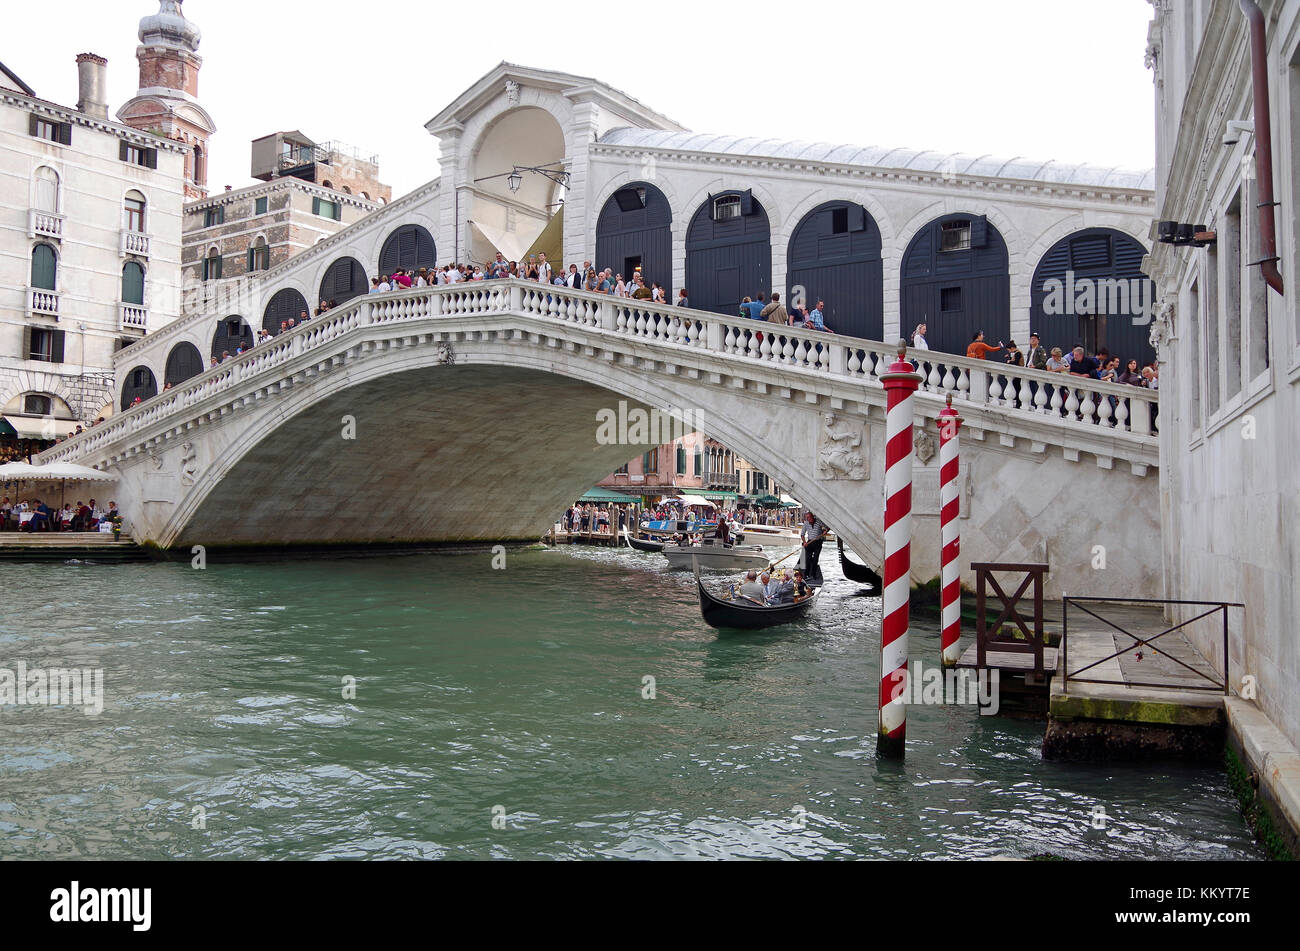 Venice, Italy, view of the recently refurbished Rialto bridge from the north, - Stock Image